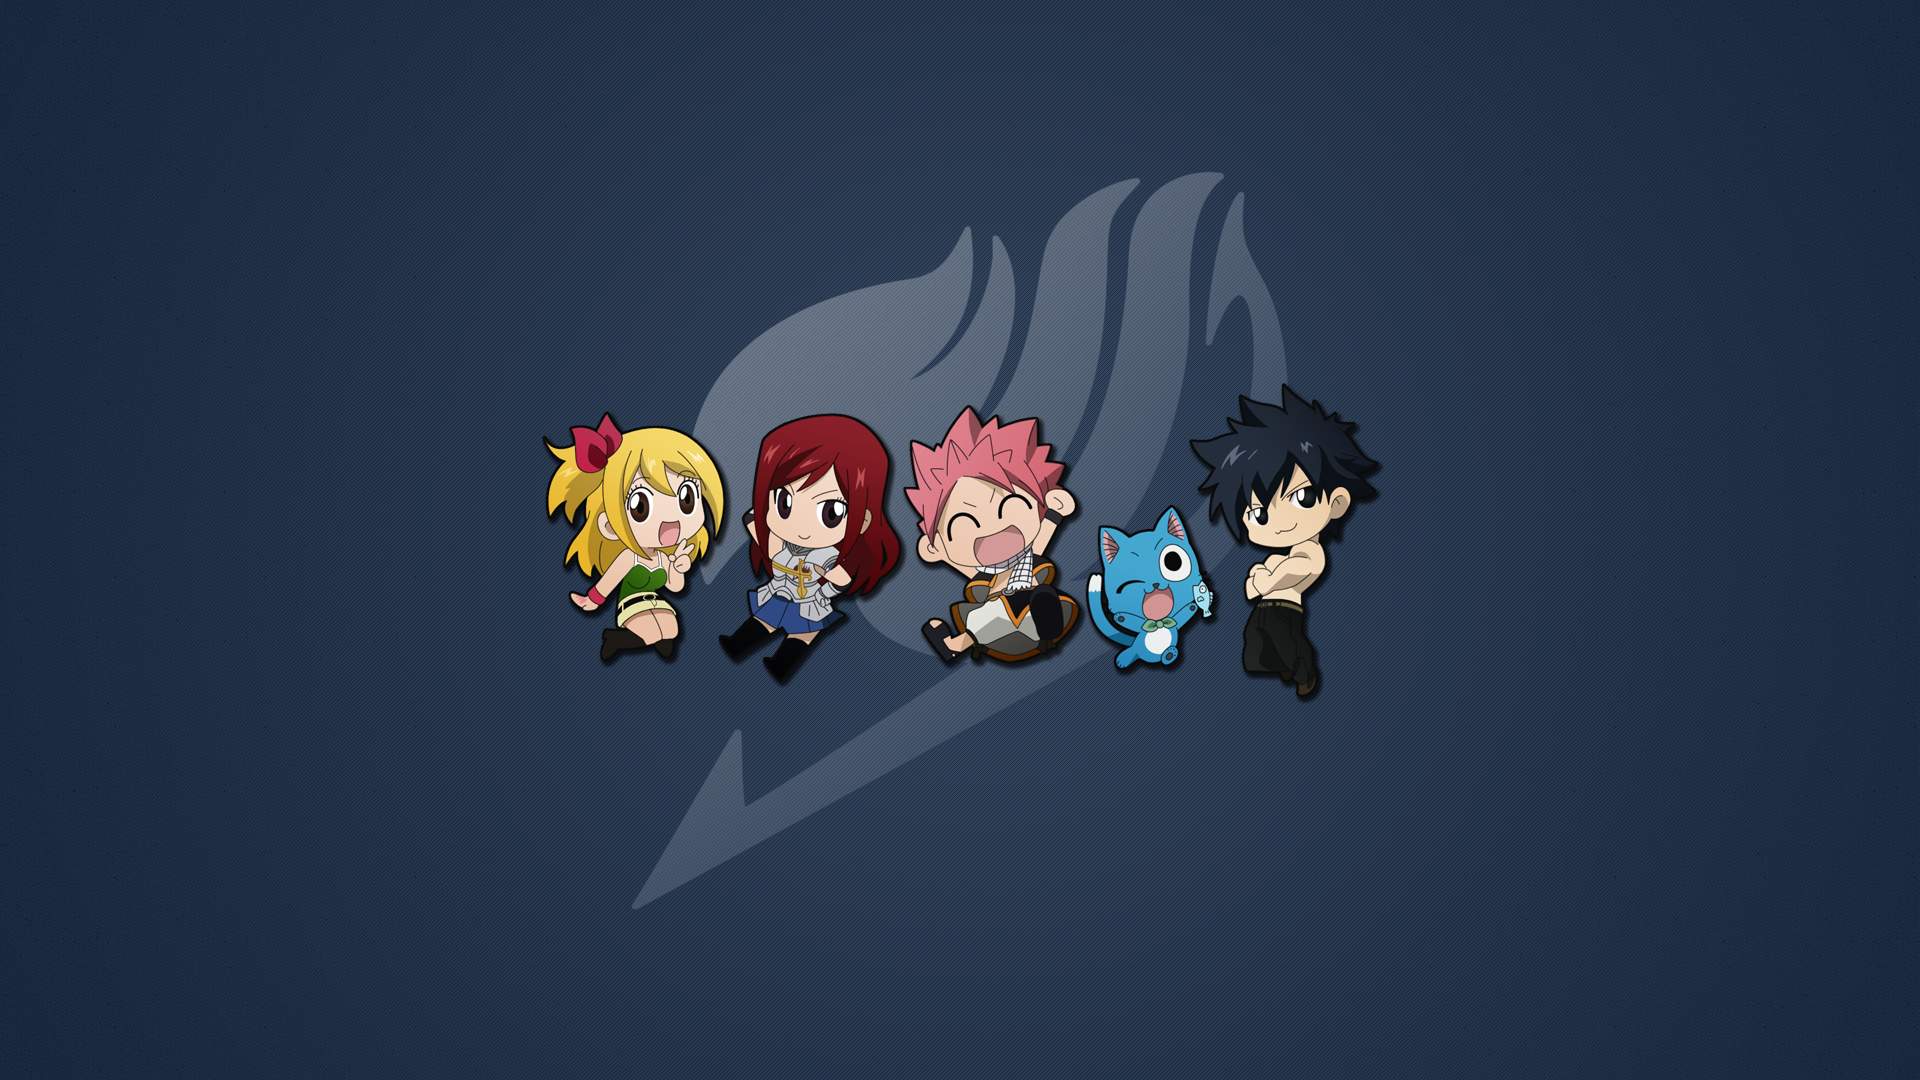 fairy tail wallpaper by lordmycelium on deviantart